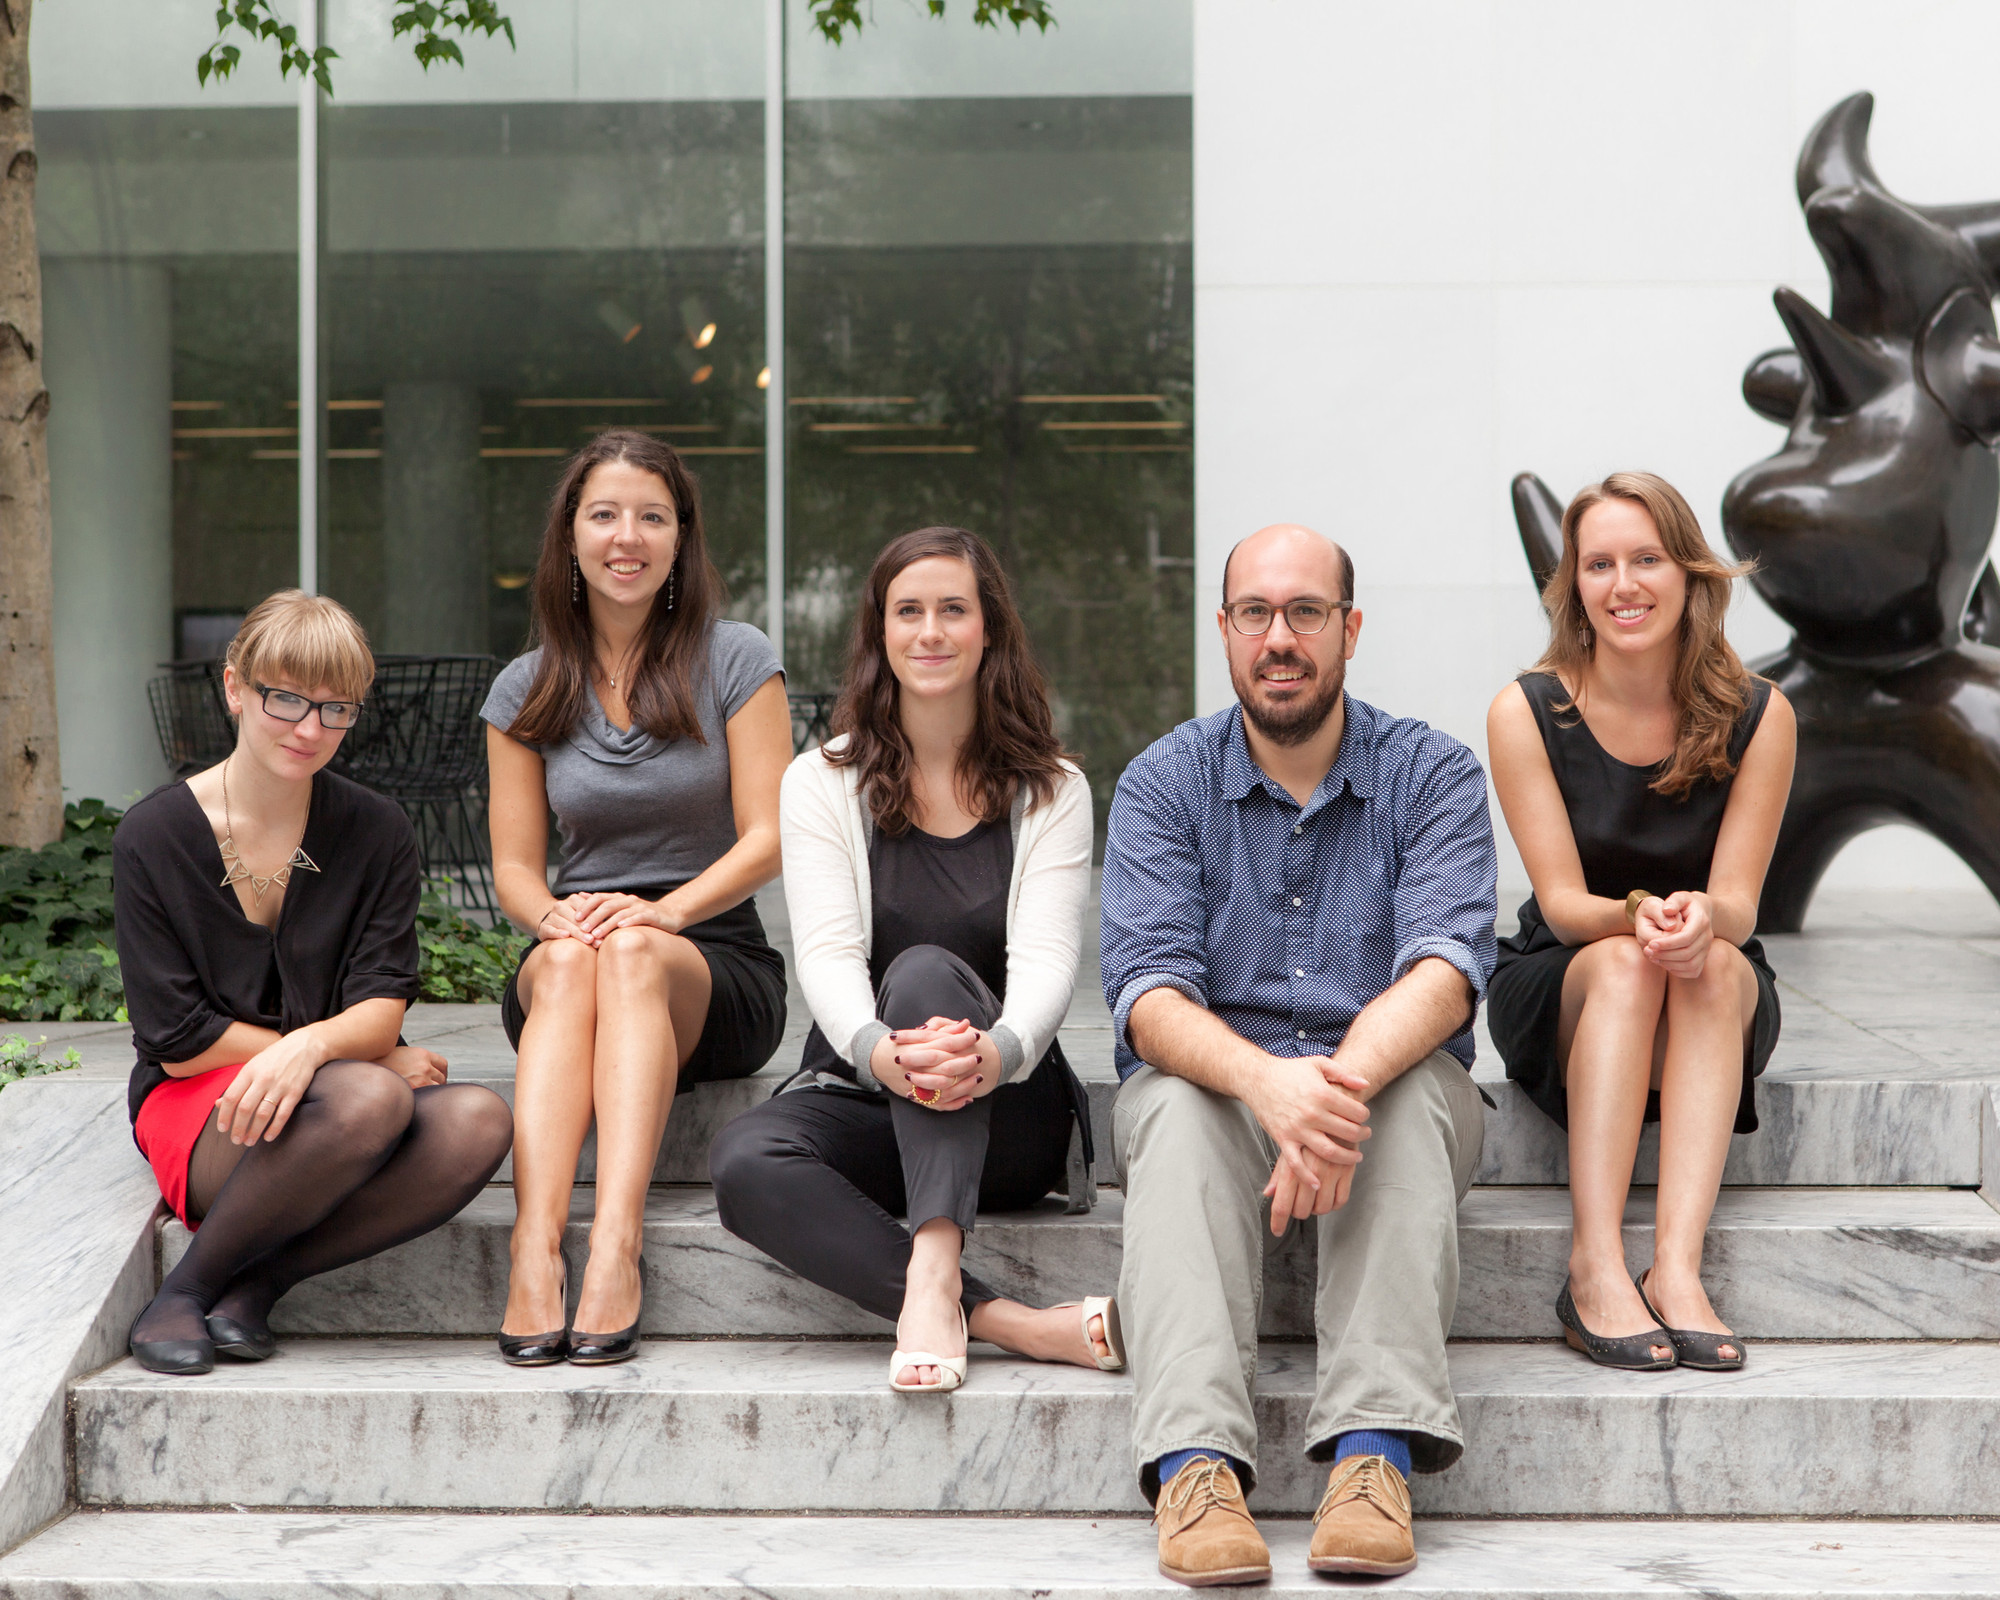 2013-14 MRC Fellows, from left: Kirsty Dootson, Rachel Kaplan, Stephanie O'Rourke, Andrew Cappetta, and Frances Jacobus-Parker. Photo: Marcin J. Muchalski, Diamond Shot Studio